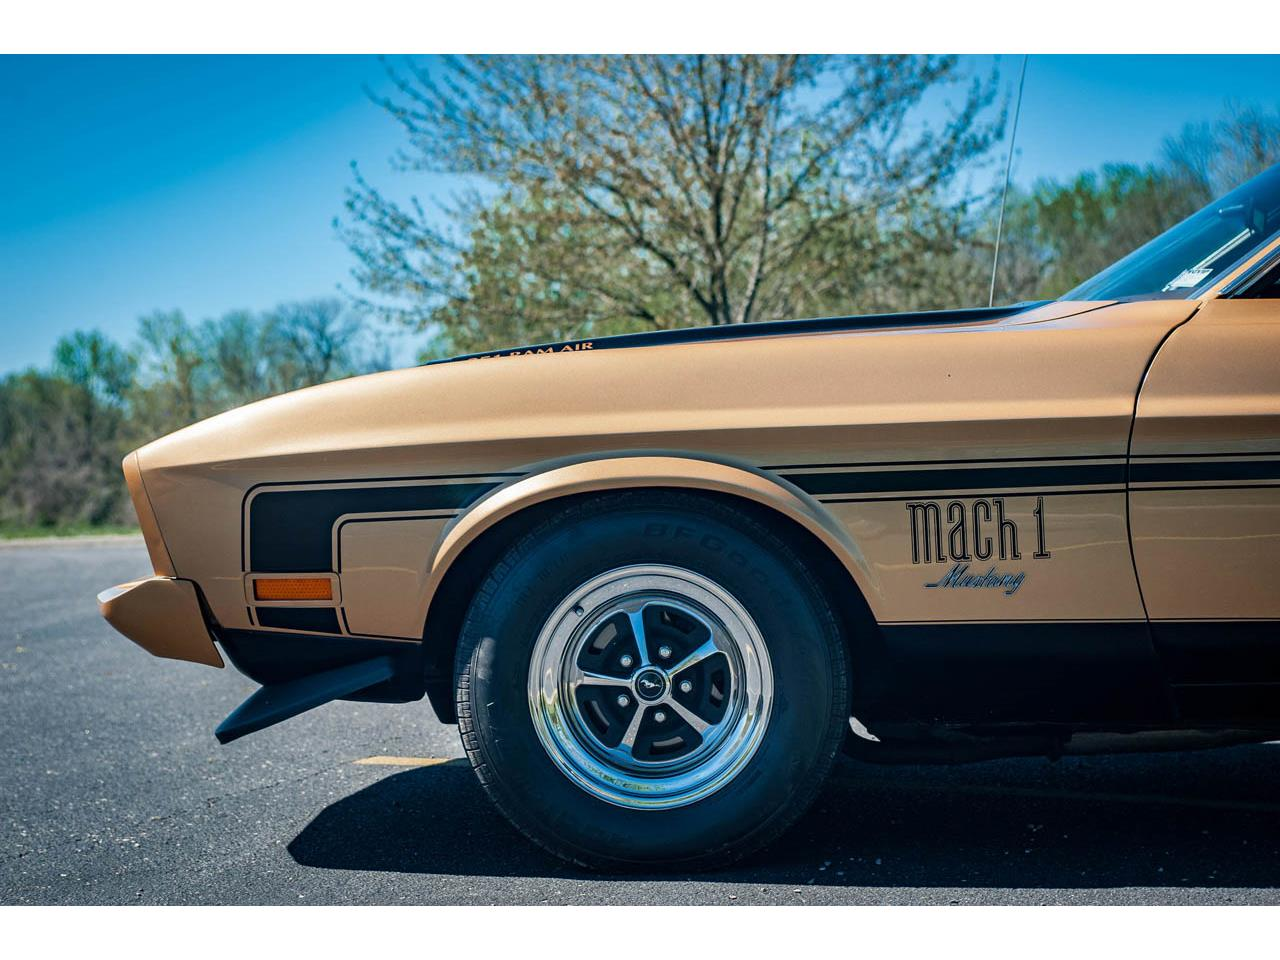 Large Picture of 1973 Mustang located in Illinois - $34,500.00 Offered by Gateway Classic Cars - St. Louis - QB8T